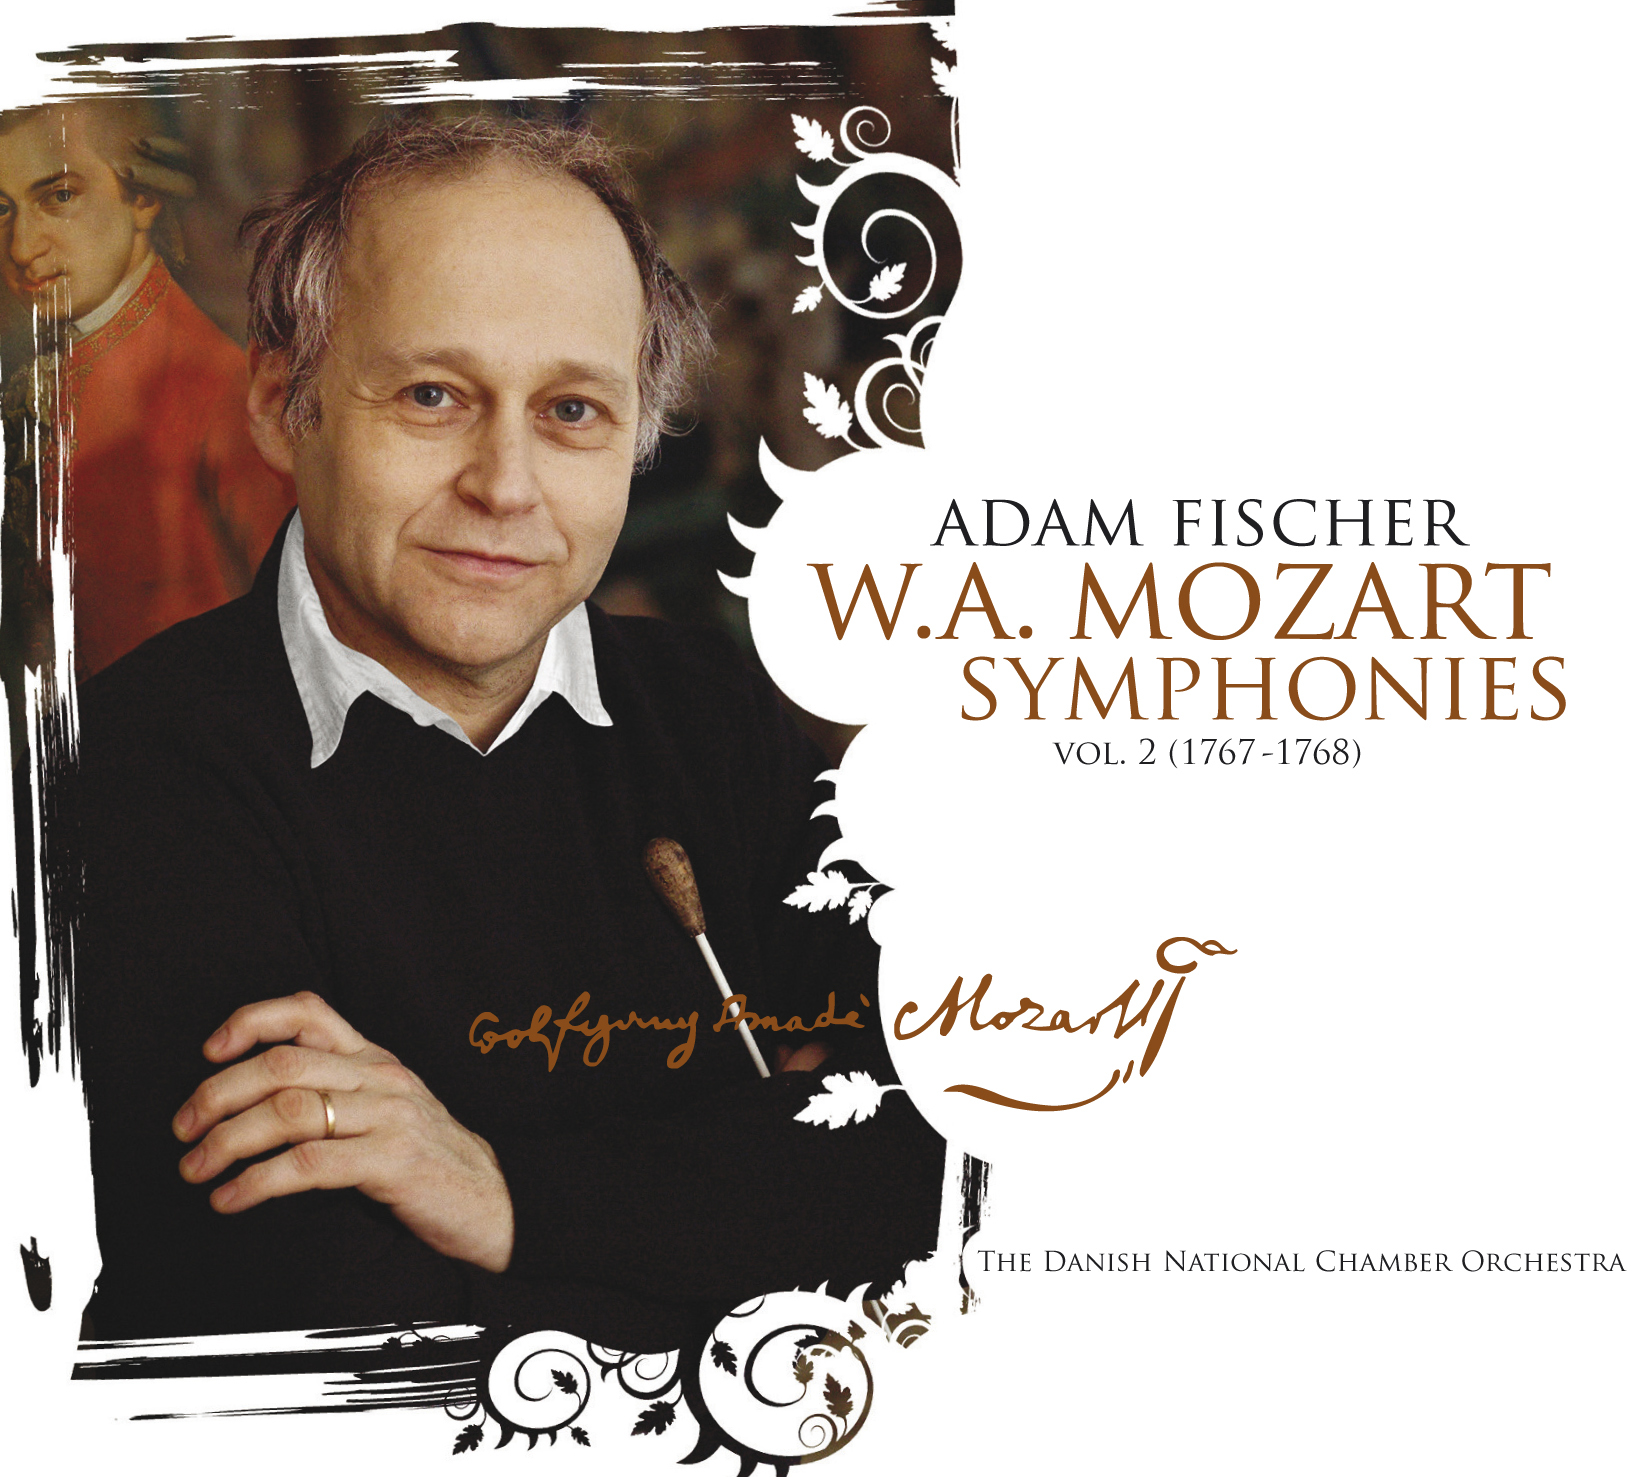 Symphony No. 55 in B flat major, K. Anh. 214 (K. 45b), Symphony No. 55 in B flat major, K. Anh. 214 (K. 45b): II. Andante